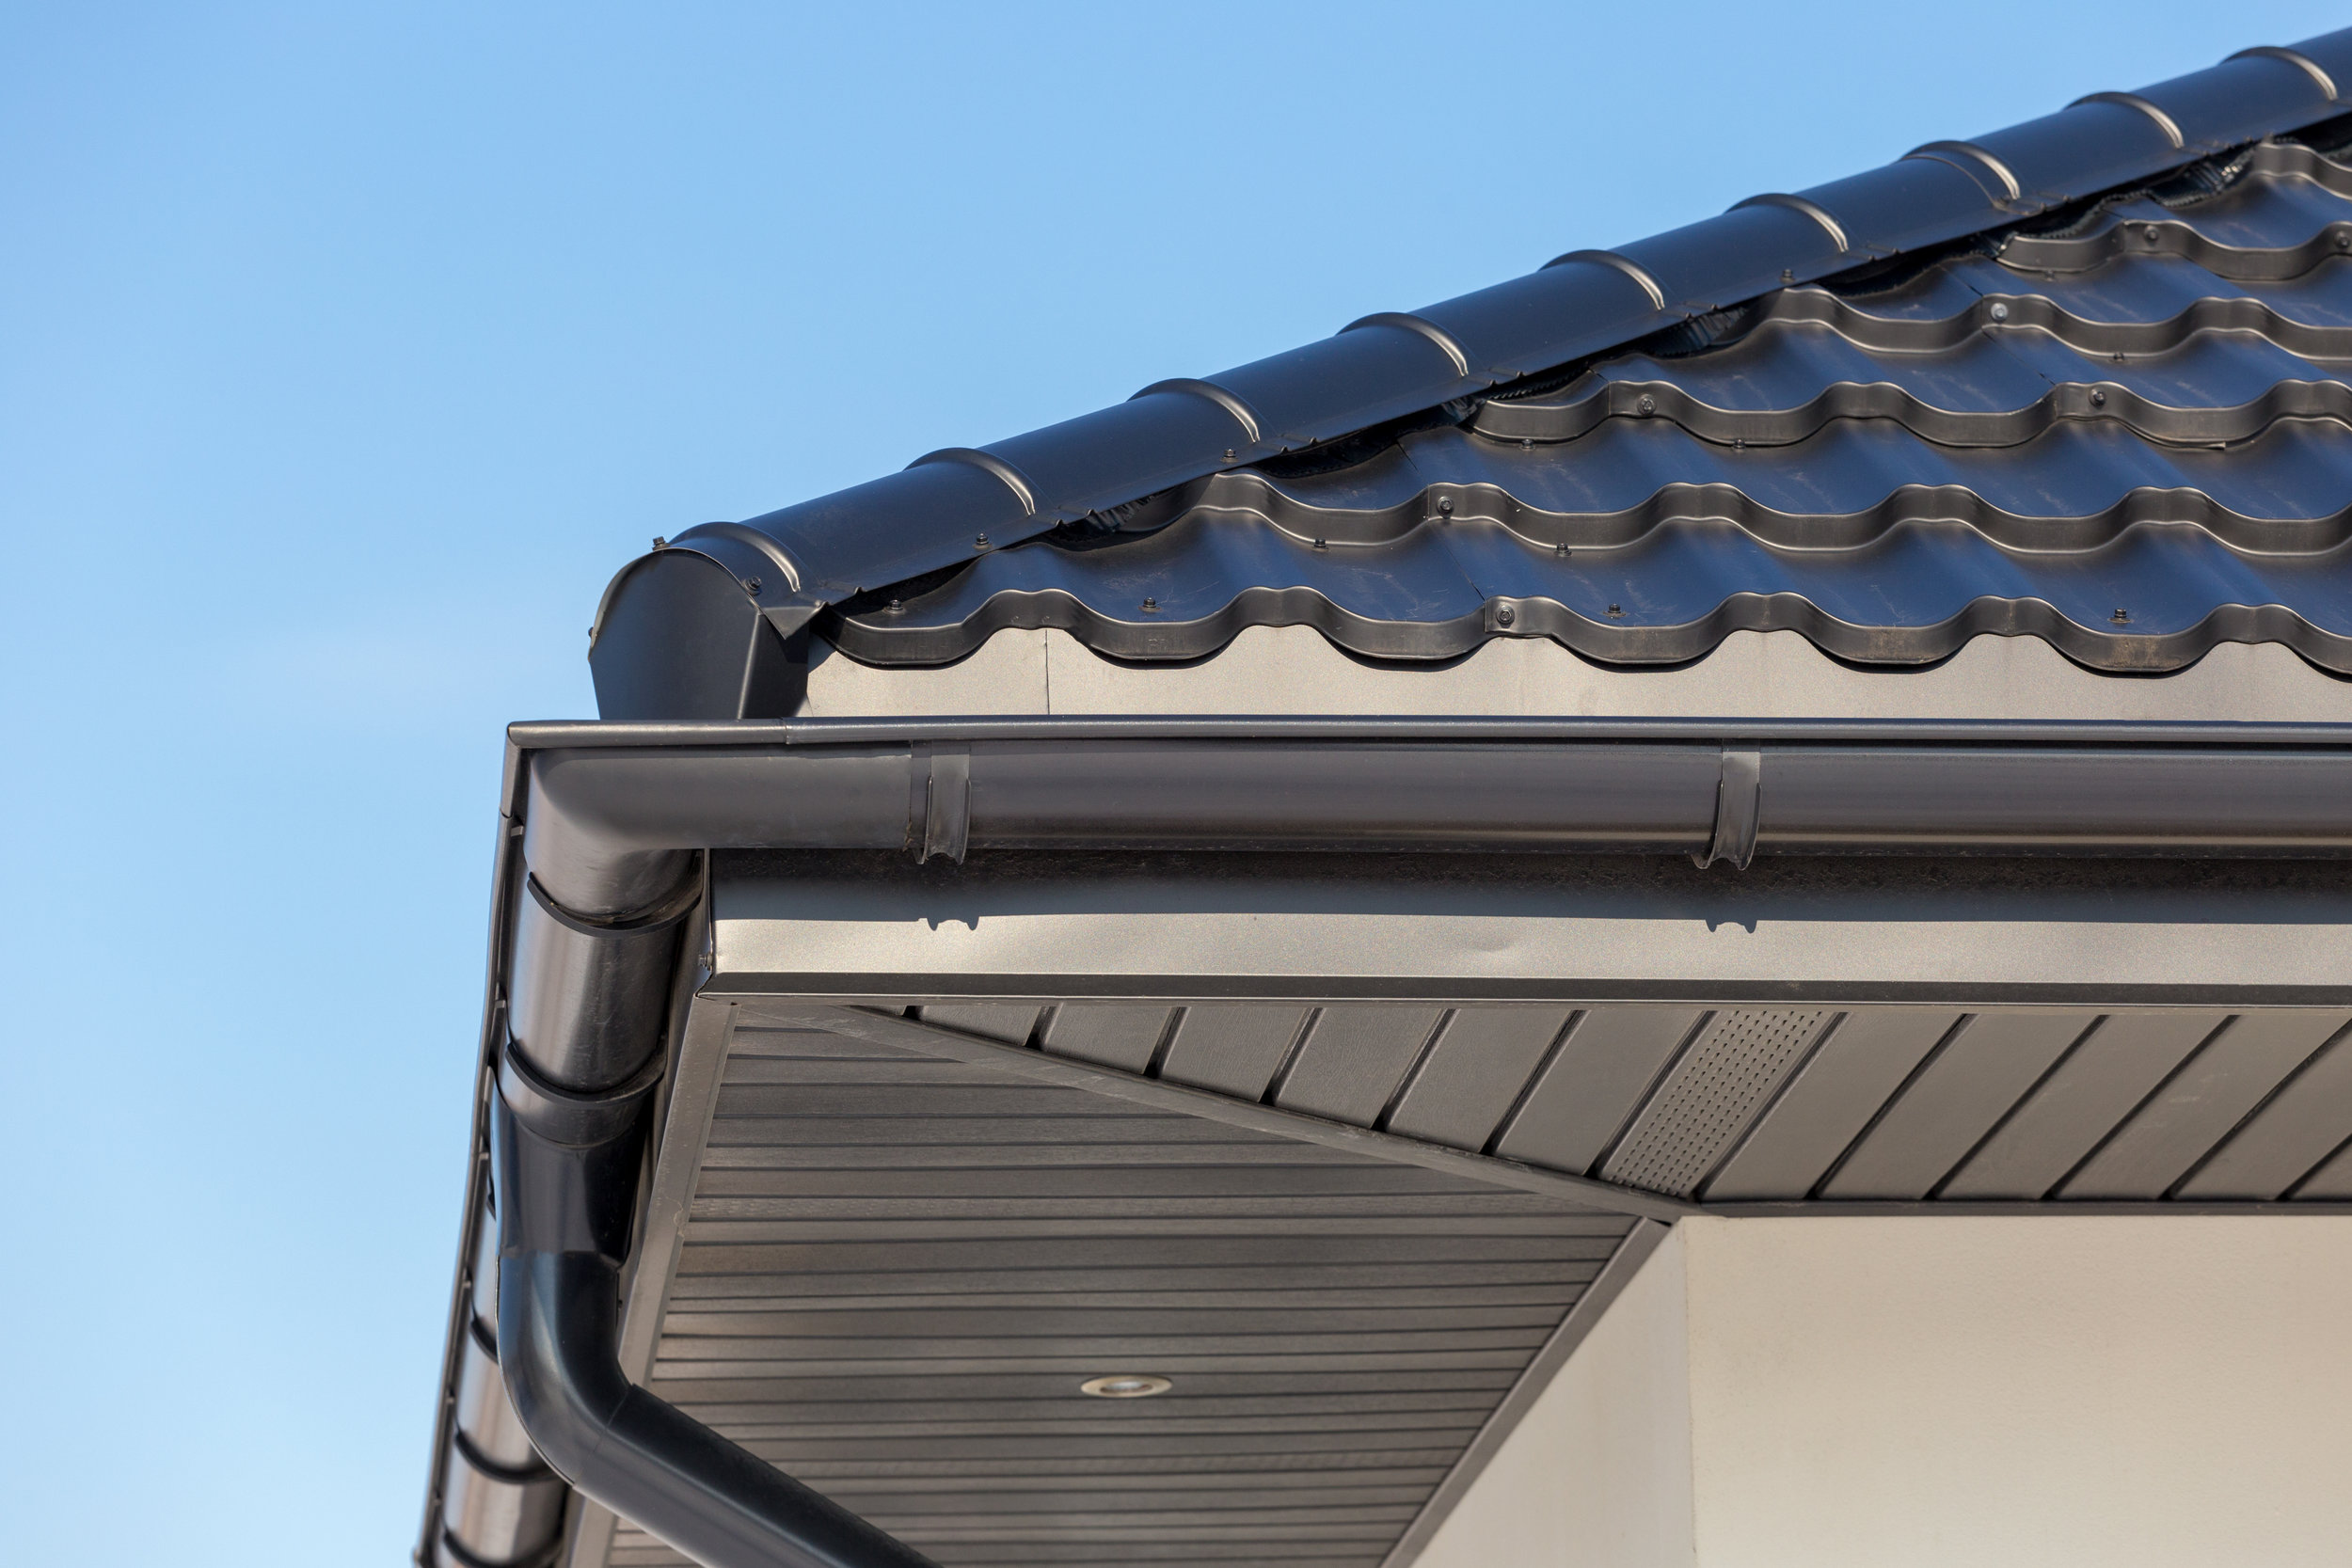 Soffits and uPVC gutter downpipes